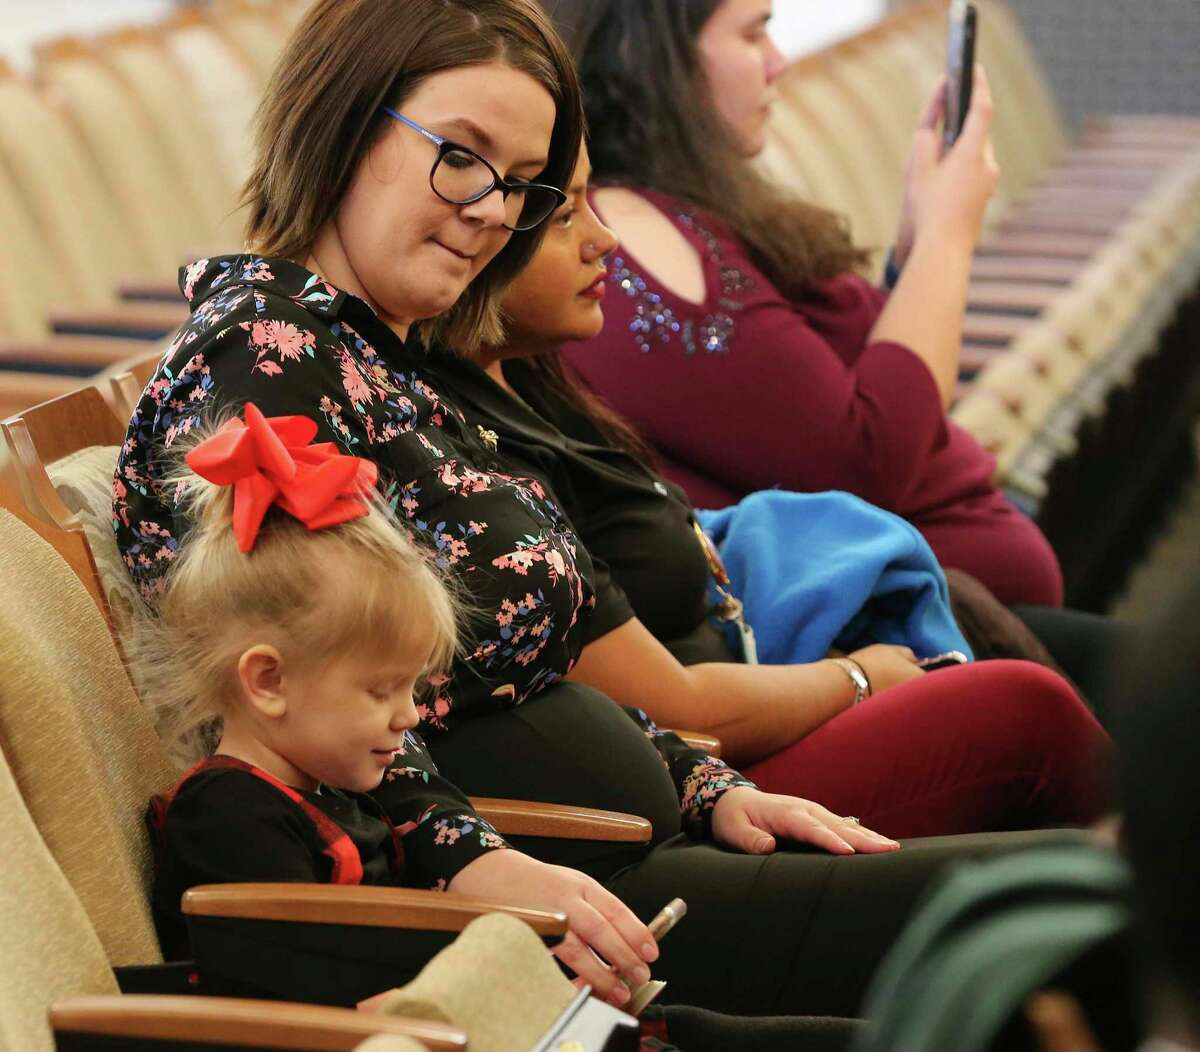 Stephanie Adams and her 4-year-old daughter, Madeline, attend the City Council session as members decide to put the renewal of funding for the city's Pre-K 4 SA program on the May ballot. The child is enrolled in the pre-kindergarten program.